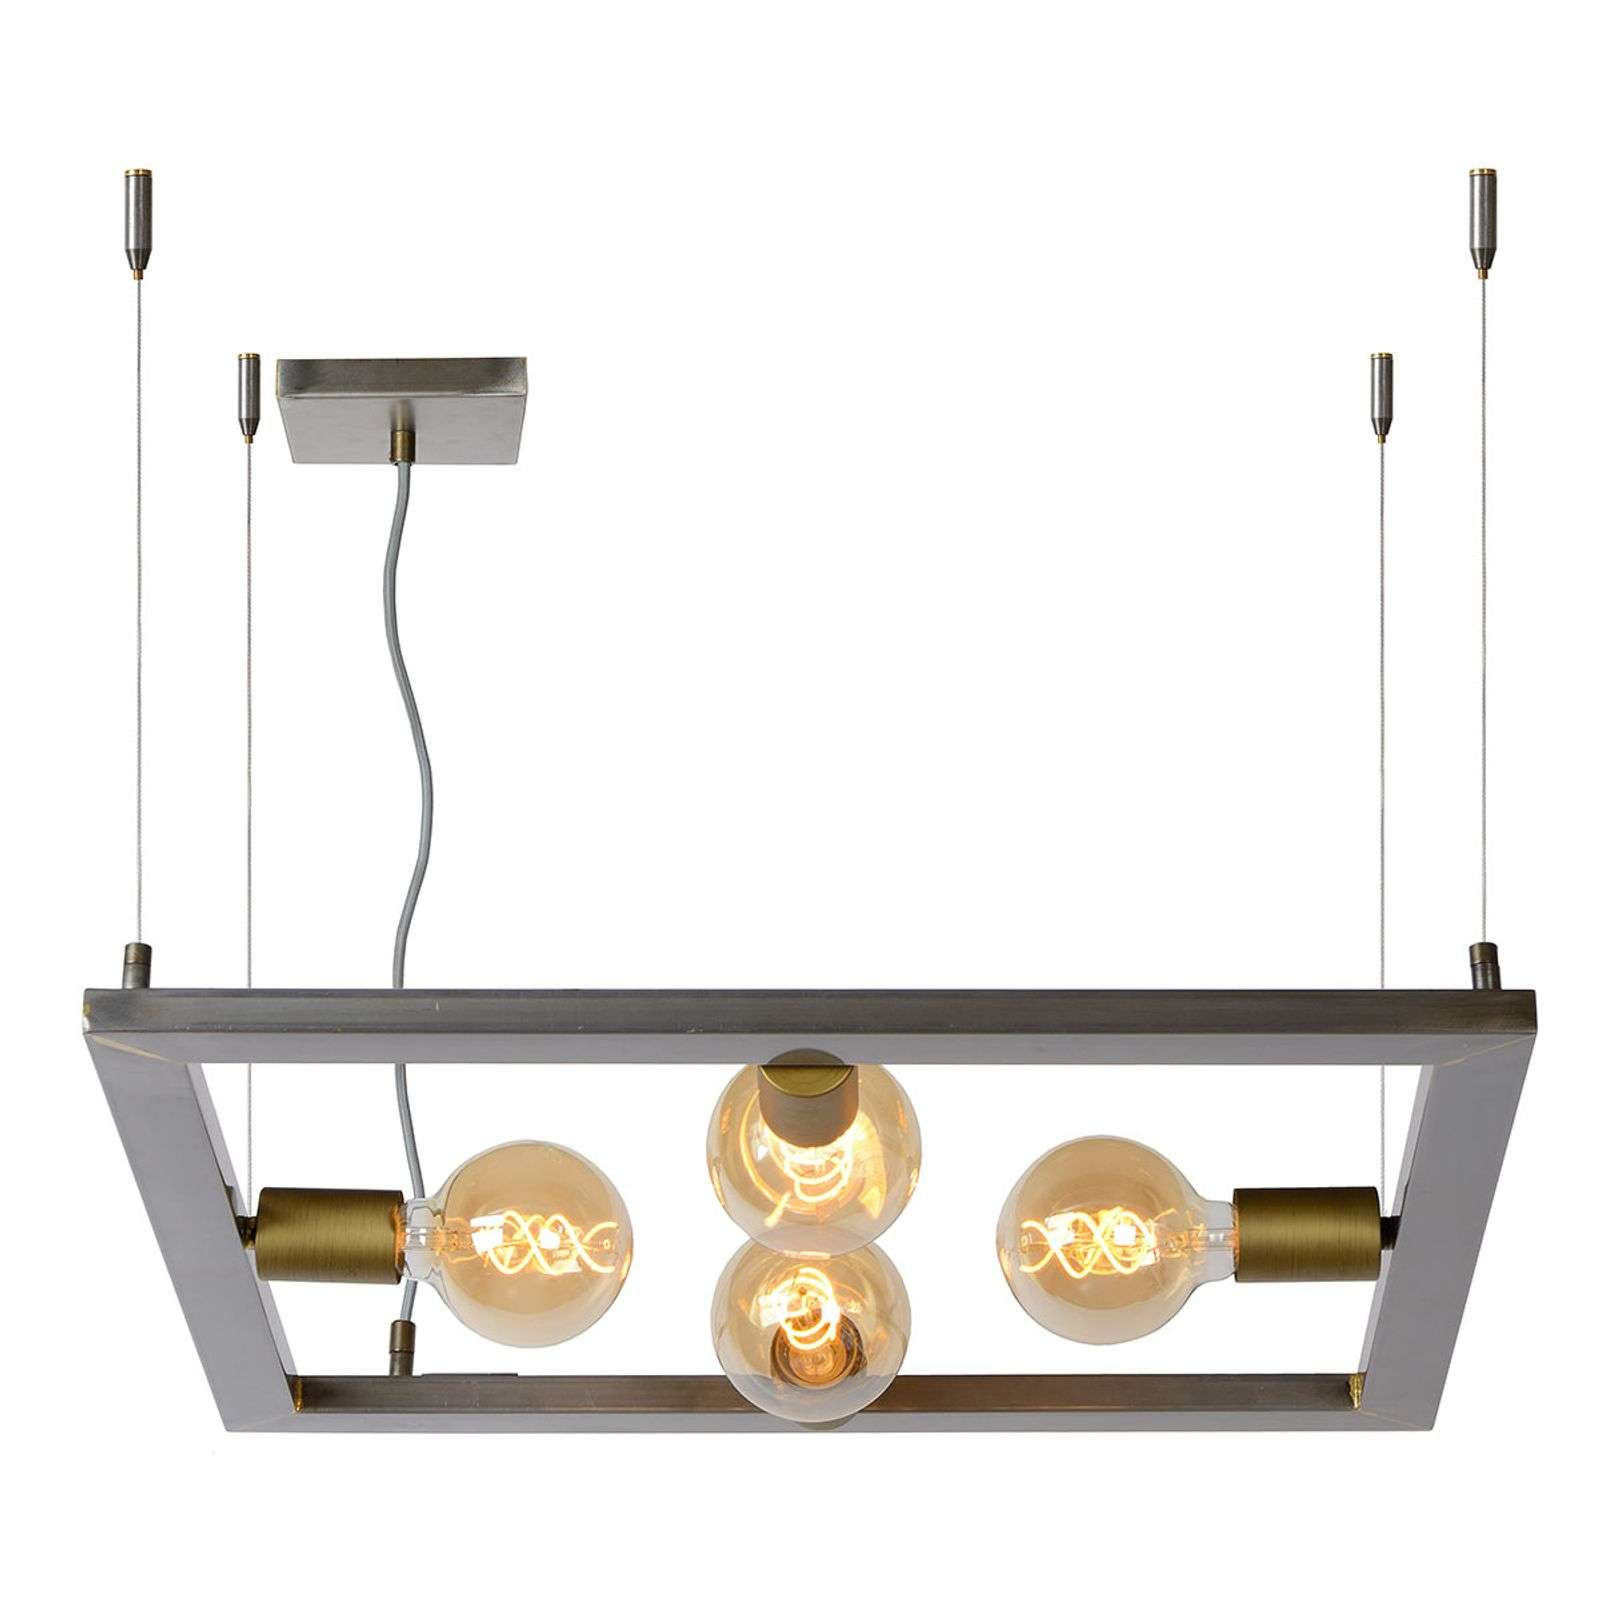 Suspension Thor quatre lampes, fer brut